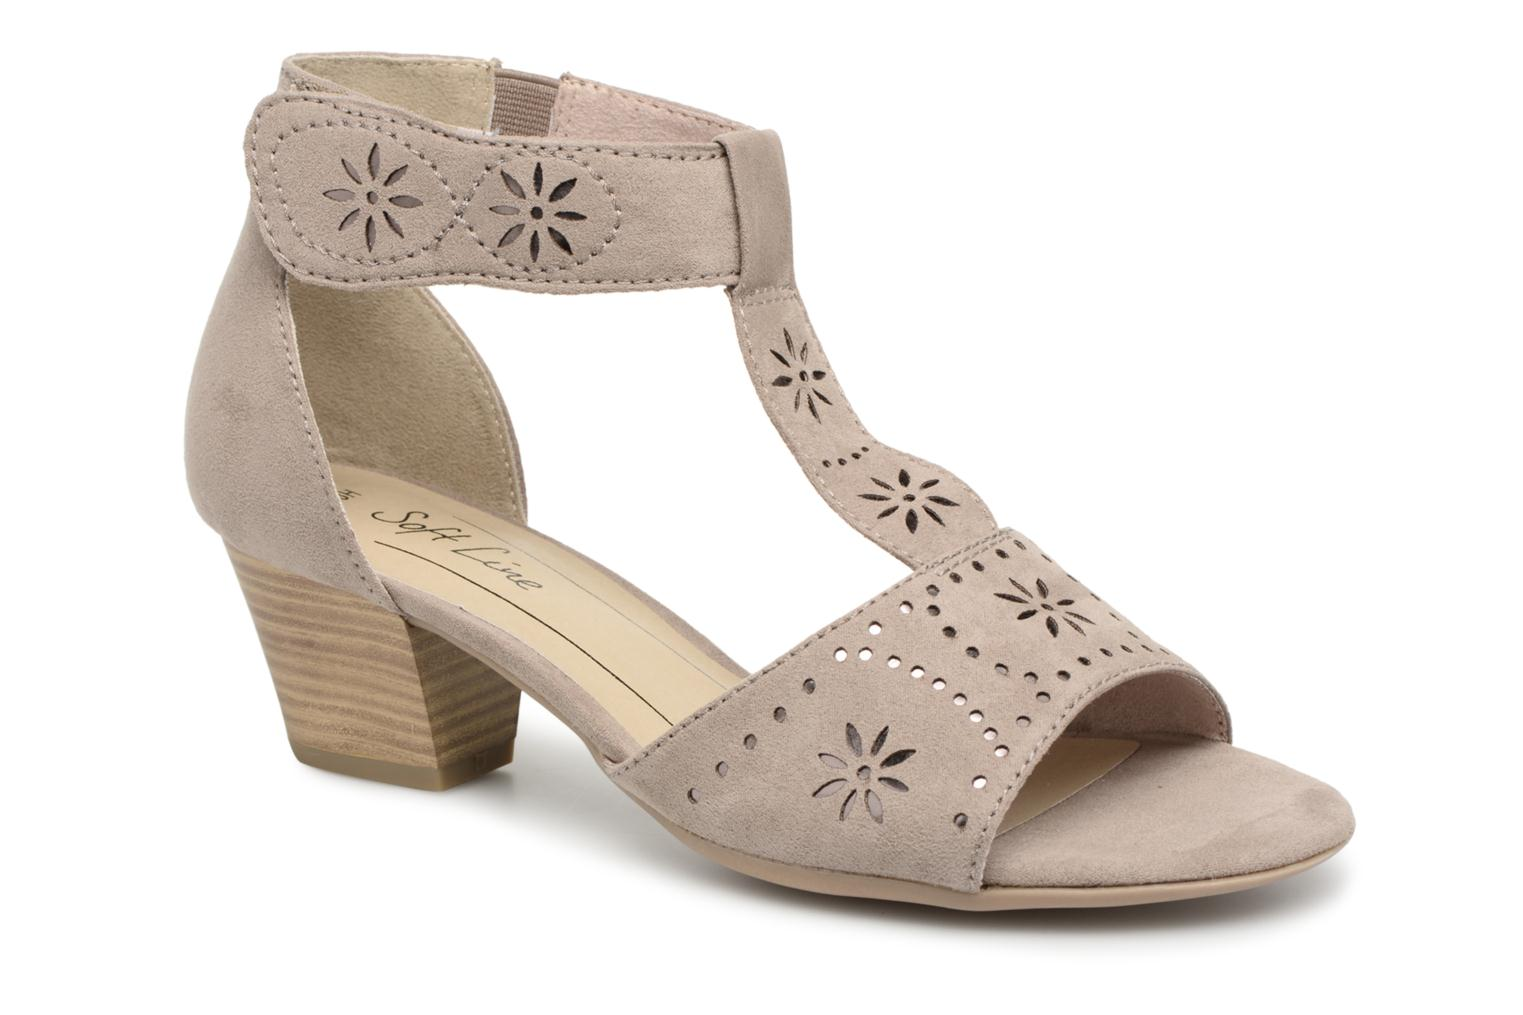 Carletta - Sandales Pour Femmes / Chaussures Beige Jana SExAH